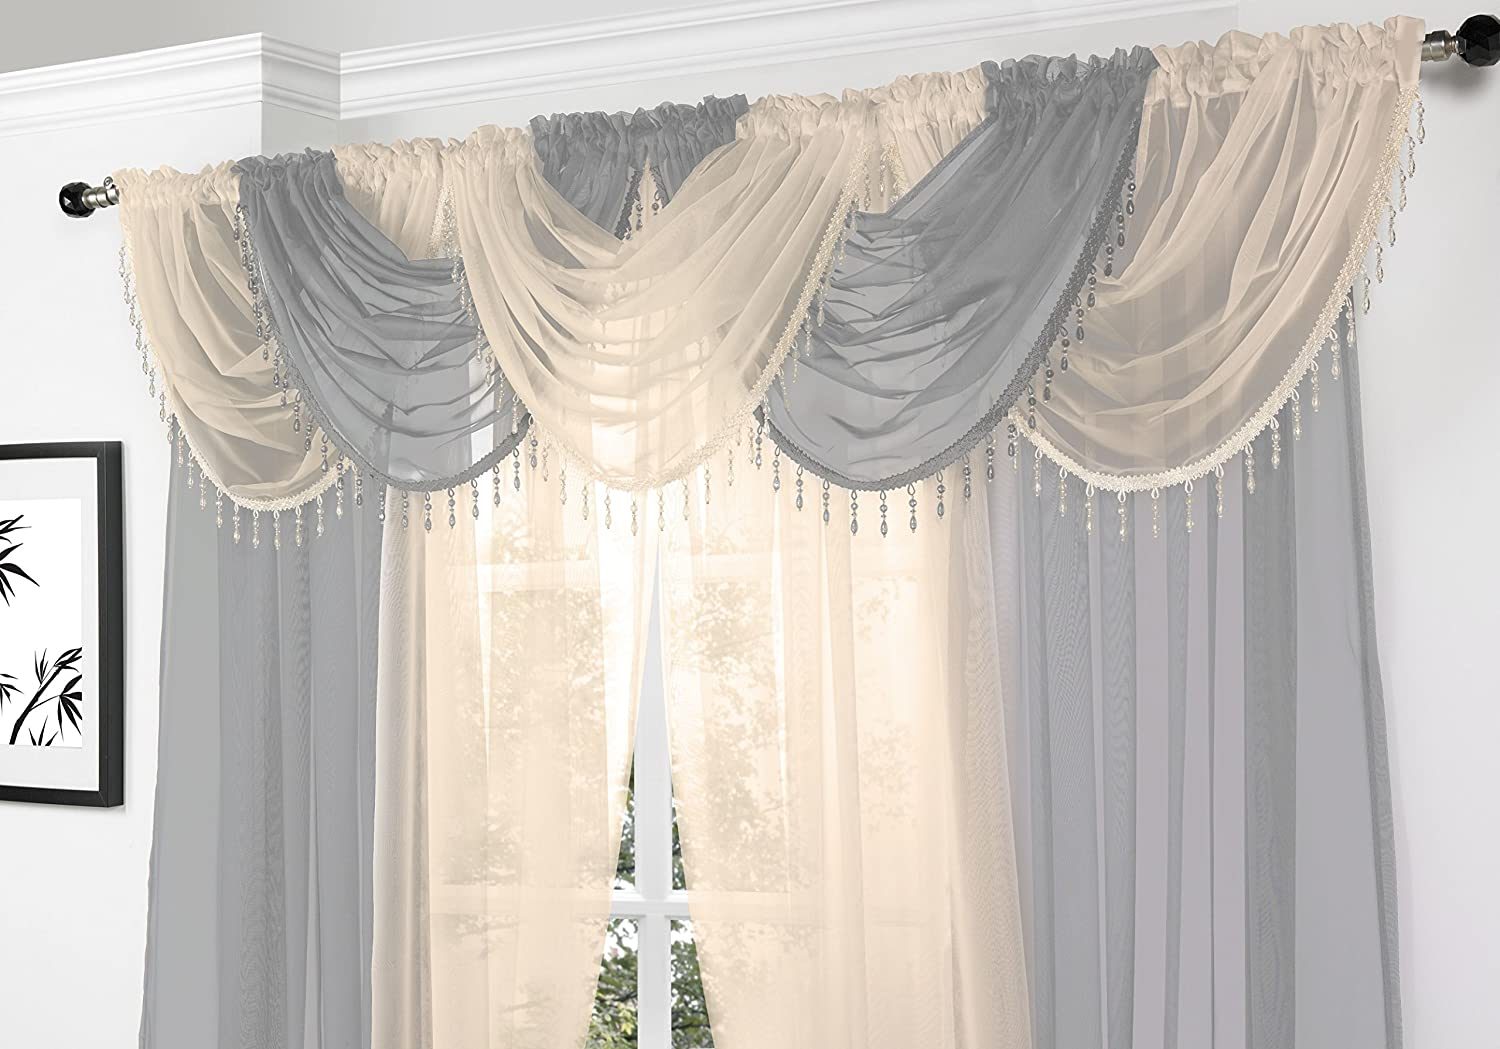 Silver Voile Curtain Swag With Crystal Beaded Trim By Supplied Maple Textiles Amazoncouk Kitchen Home